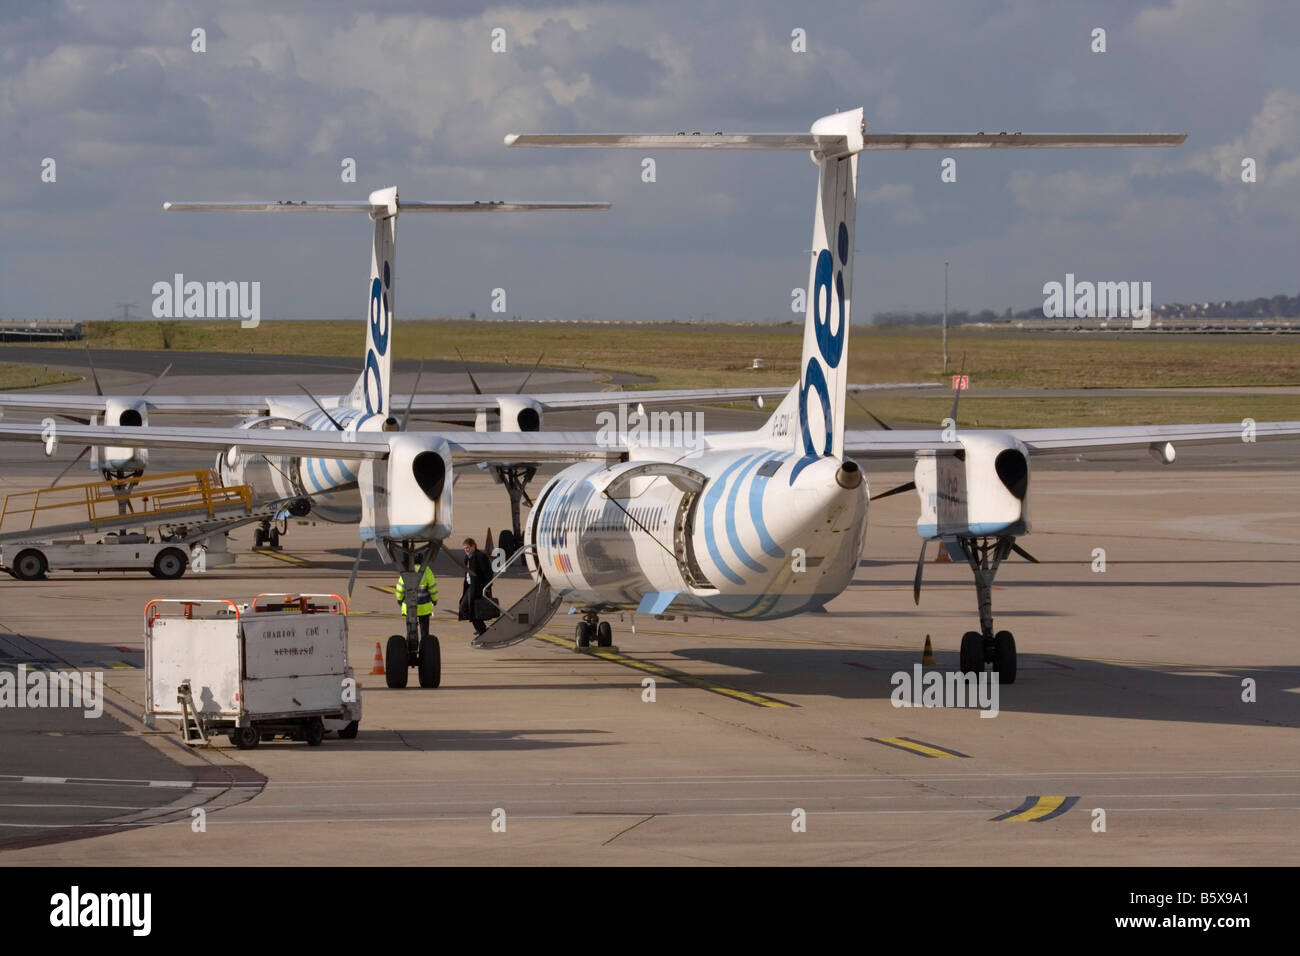 Short-haul air travel. Flybe Bombardier Dash 8-Q400 regional airliners on the ramp at Paris Charles de Gaulle airport. Stock Photo